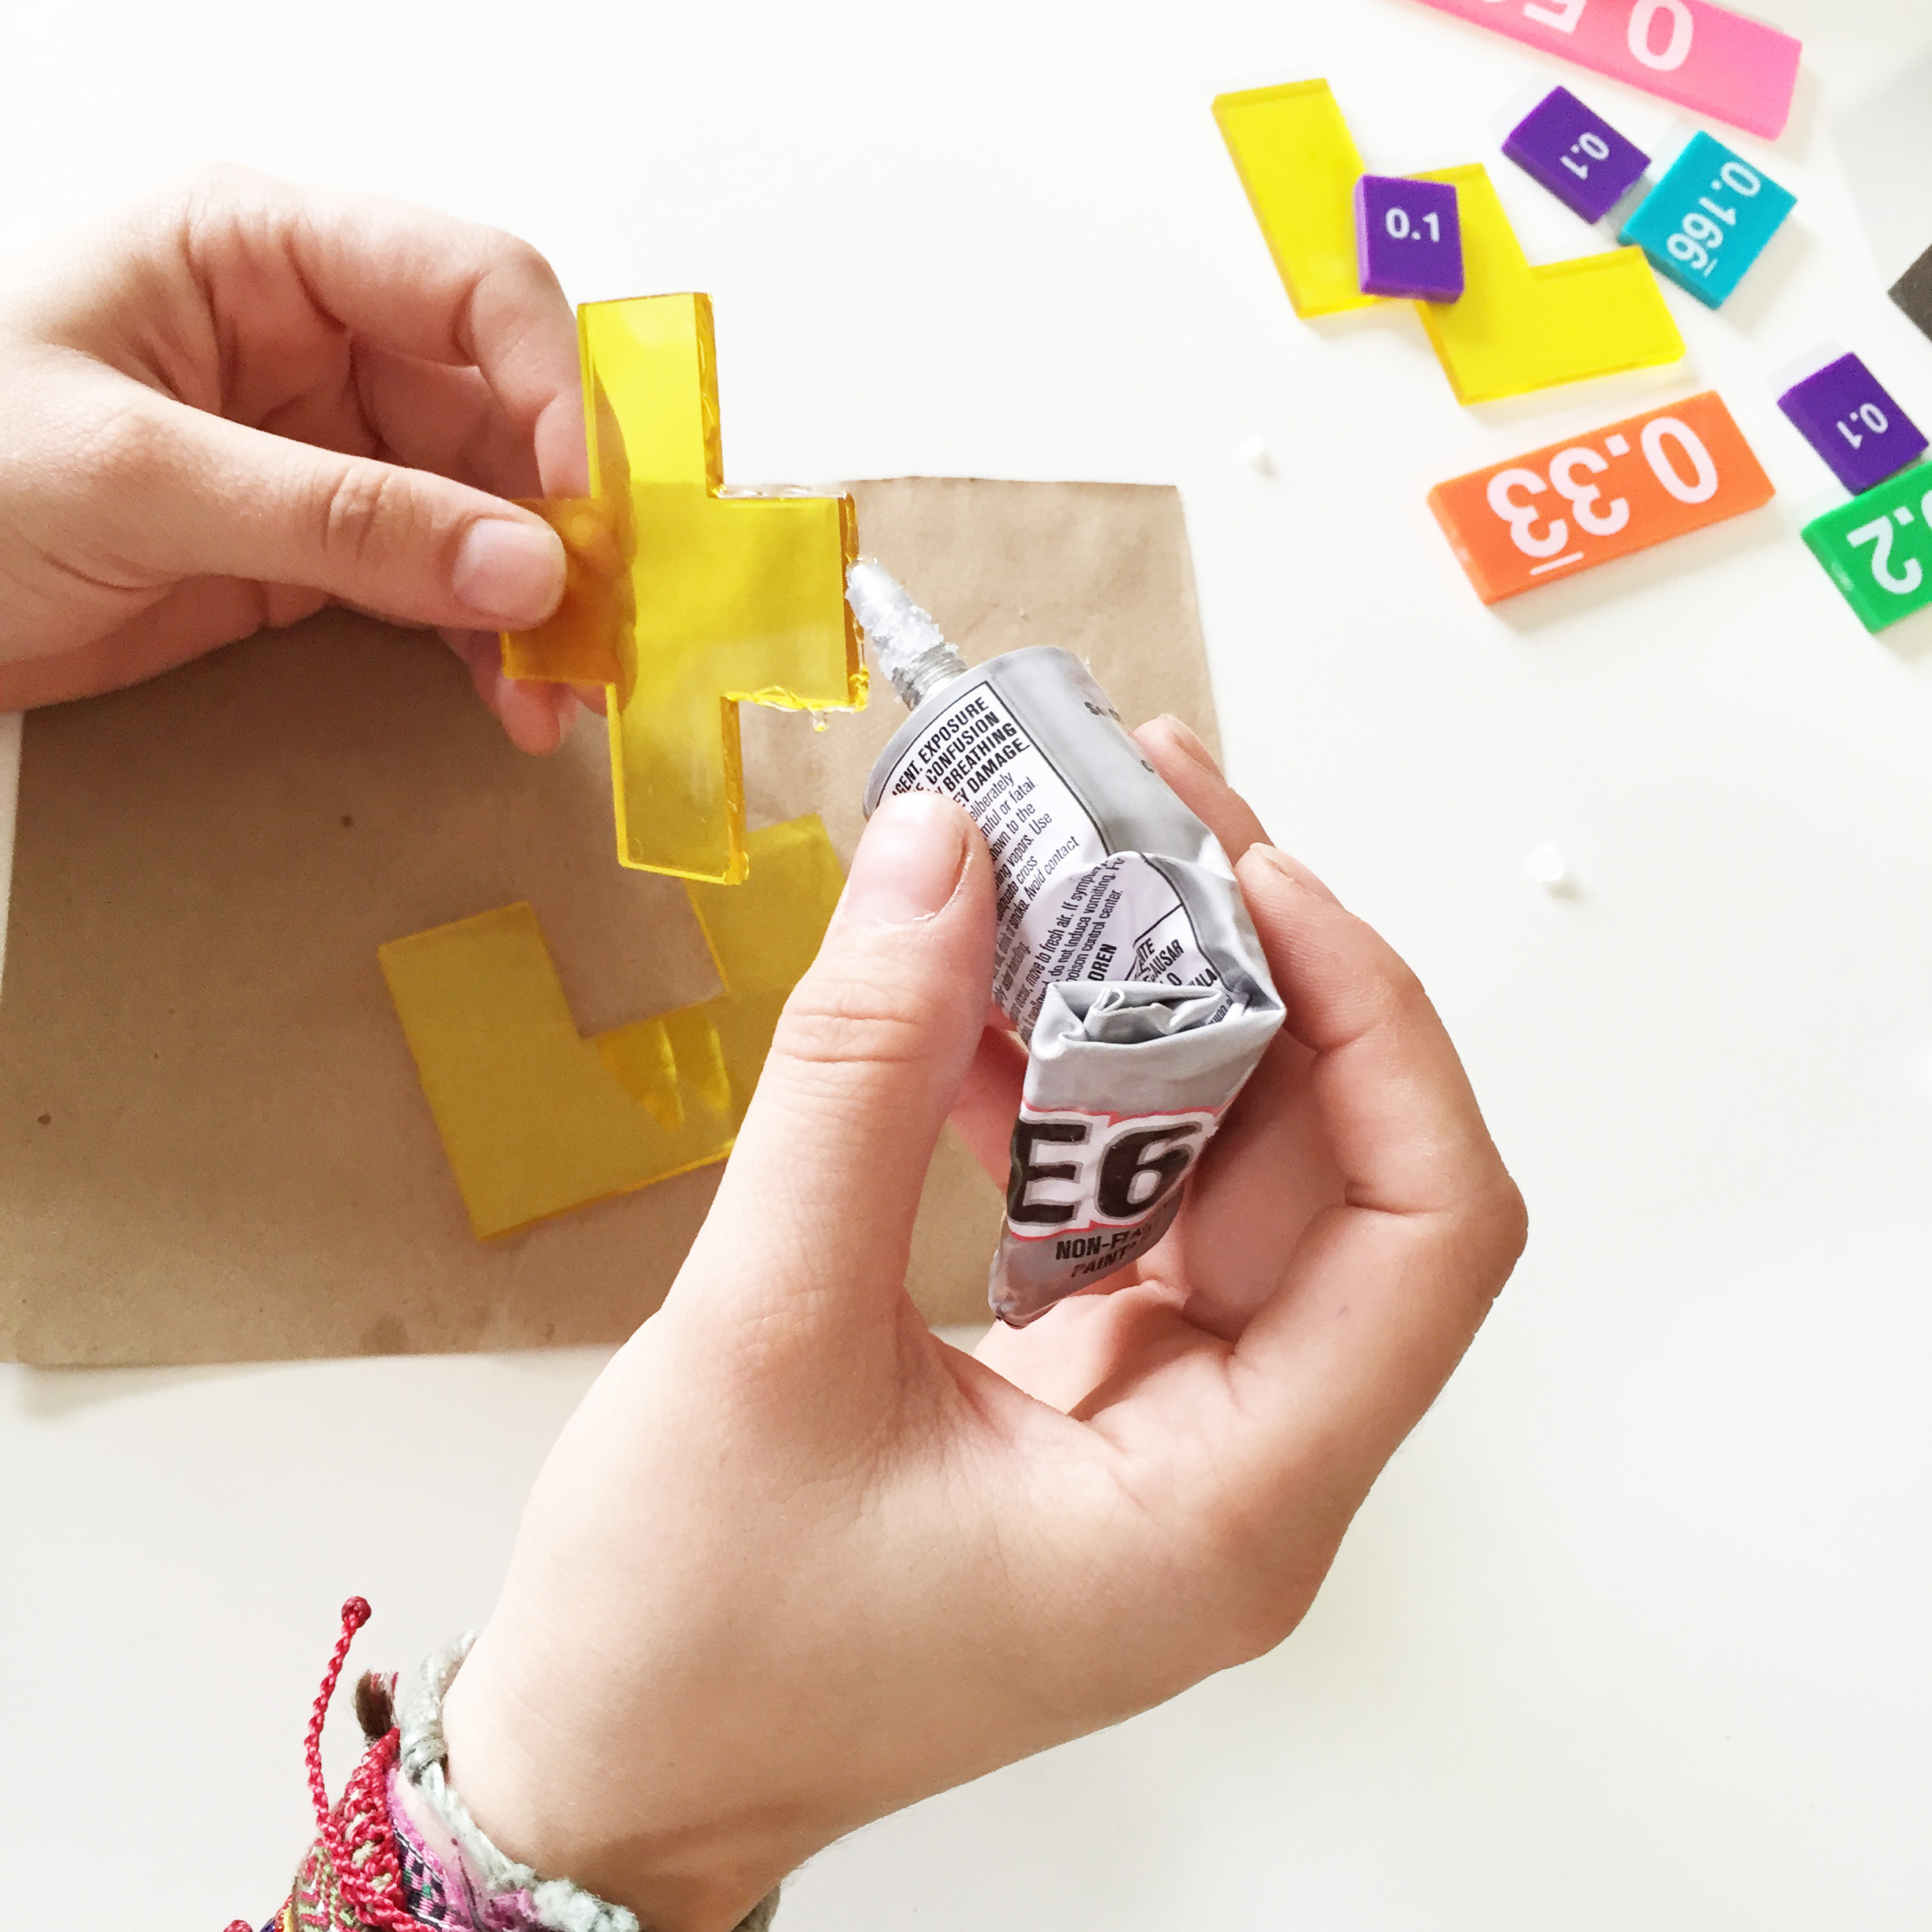 Gluing the Tangram Pieces | How to Make Geometric Coasters | Things to Do with Tangrams from the Pop Shop America Art Blog | Homemade Gift Ideas